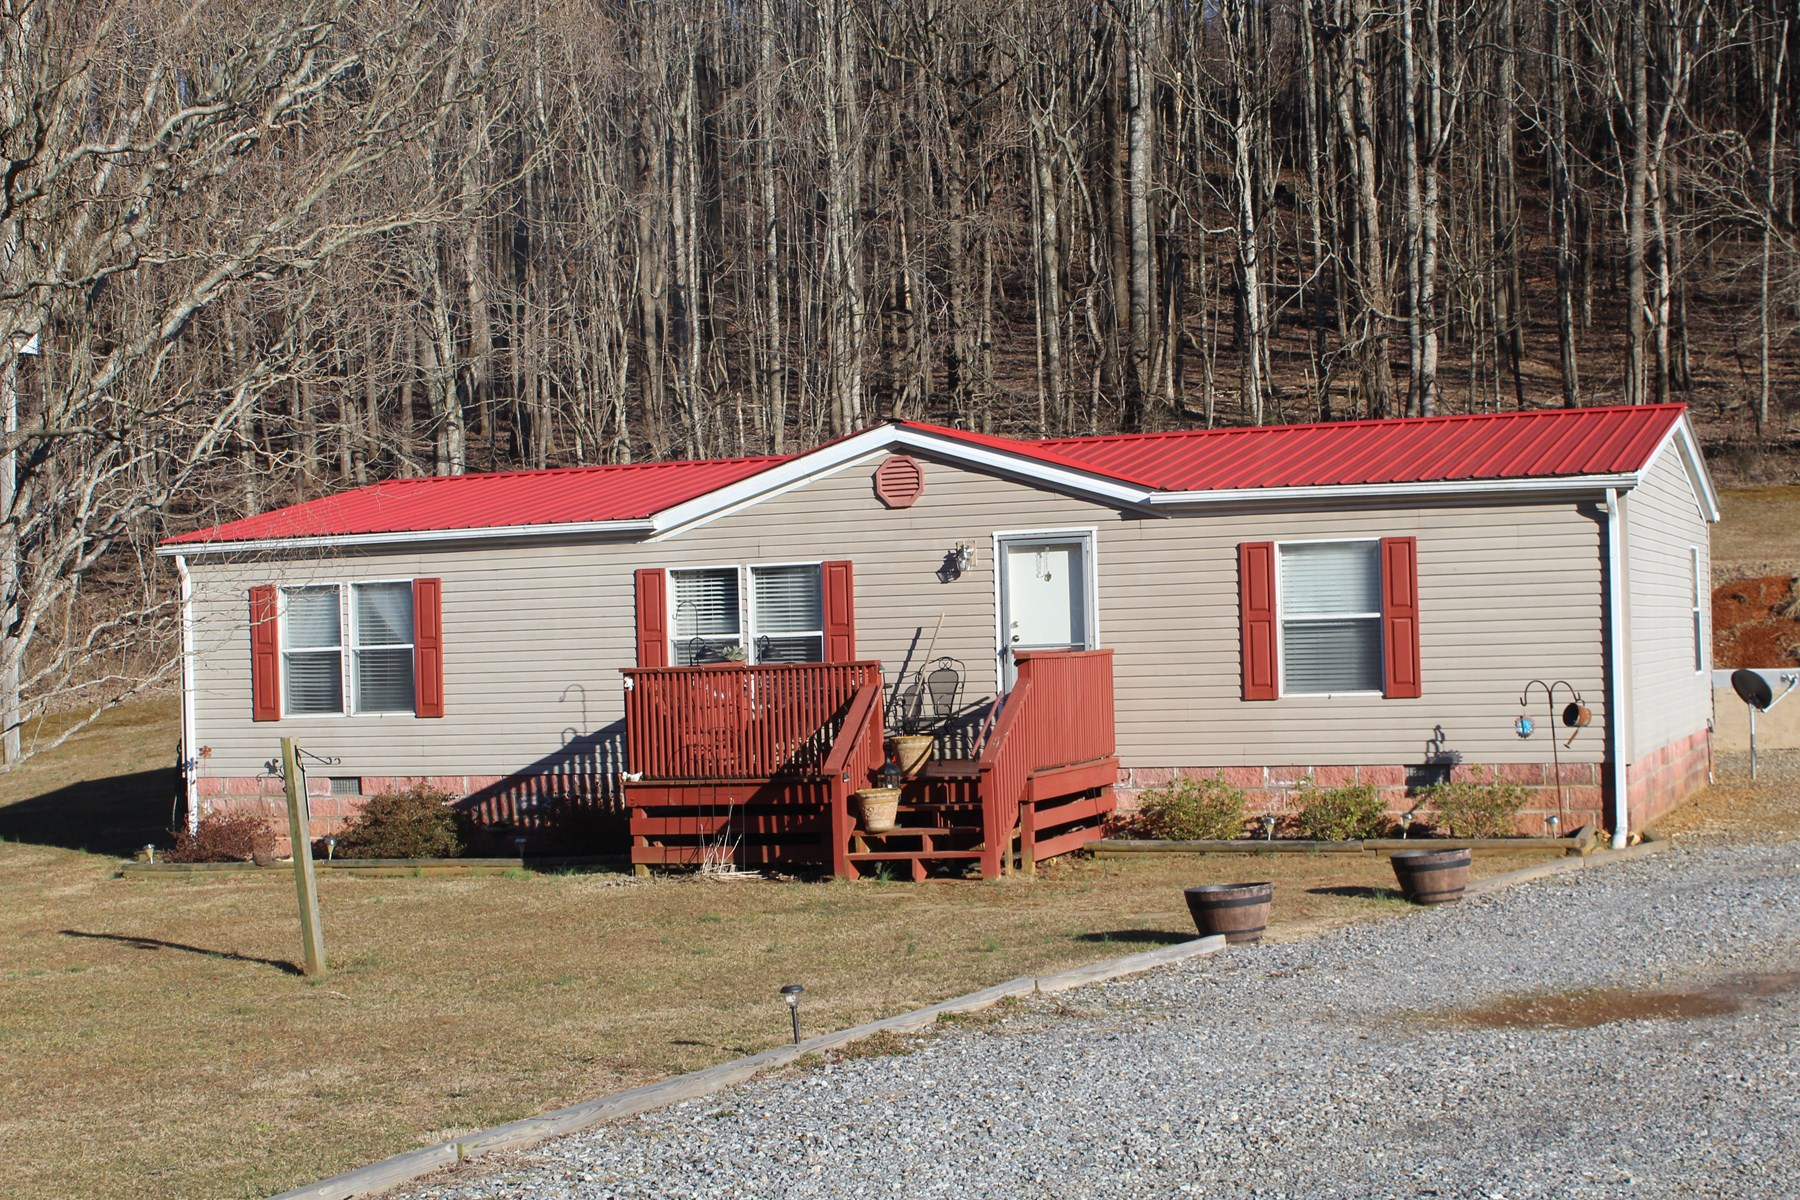 HOME WITH 5.24 ACRES LOCATED IN PATRICK COUNTY, VIRGINIA